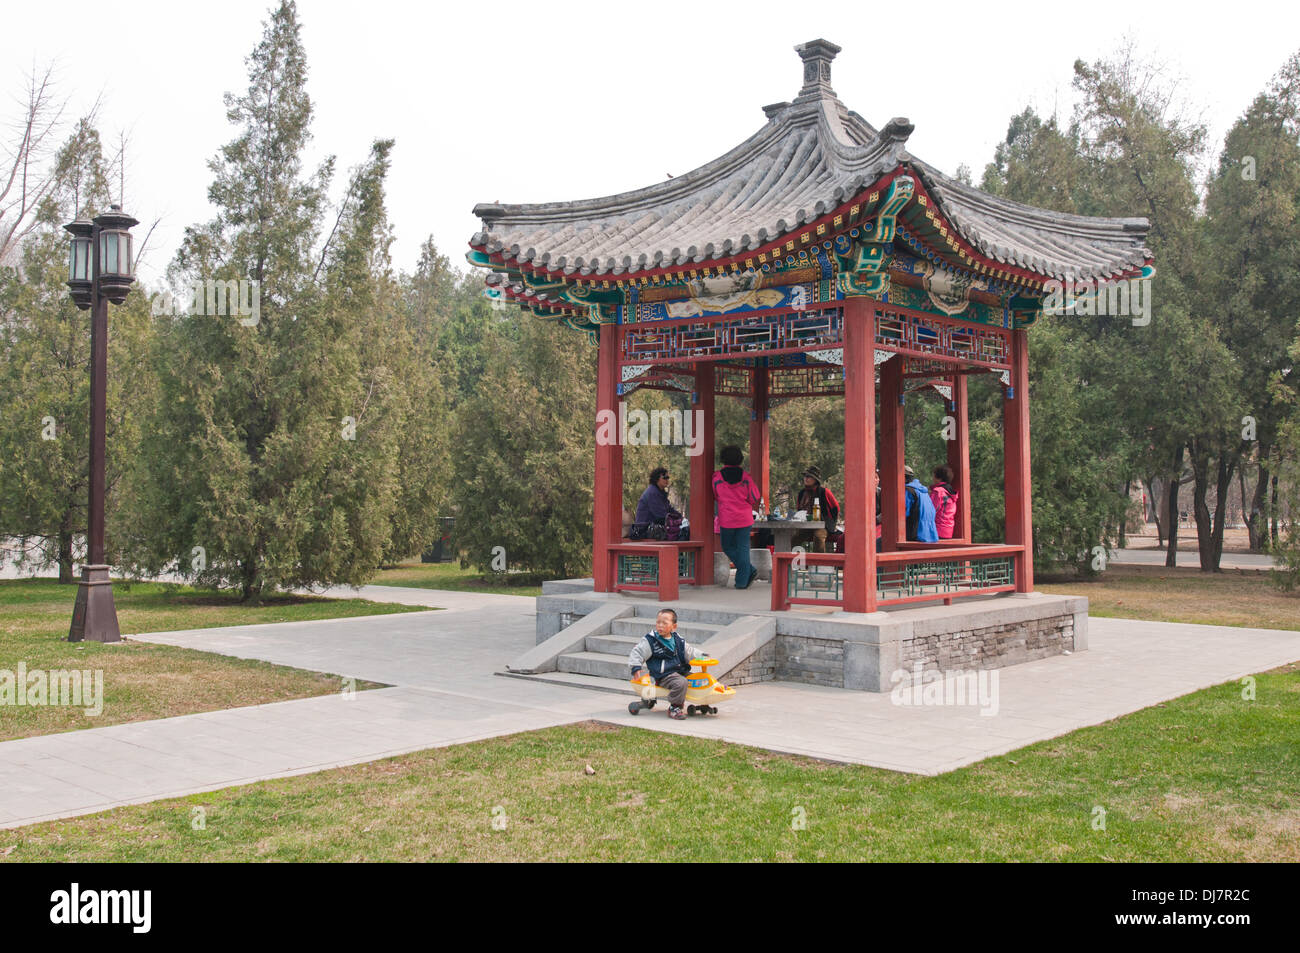 Small wooden pavilion in Temple of the Earth area (also called Ditan Park) in Beijing, China - Stock Image